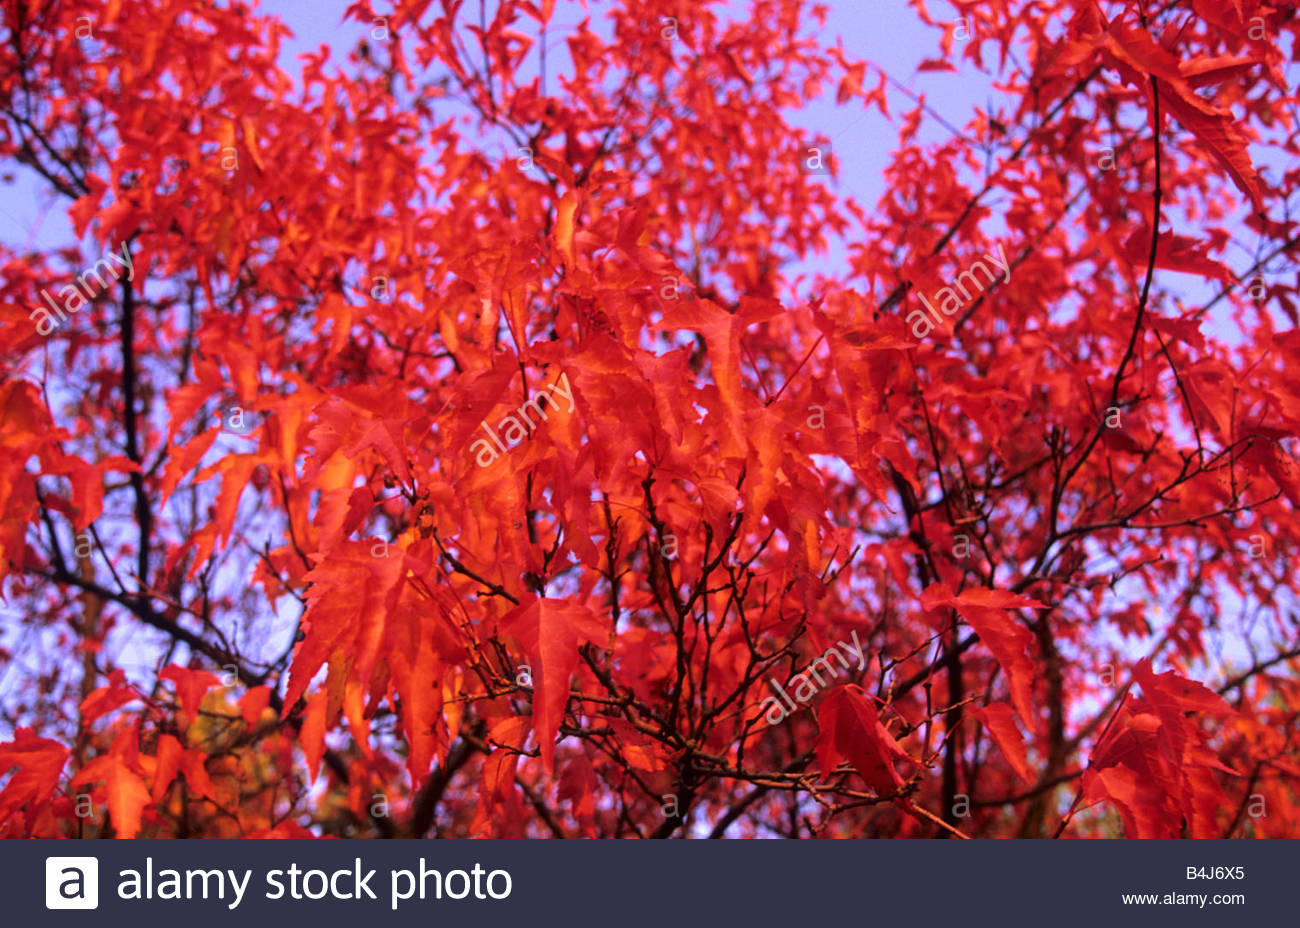 Acer Ginnala Stock Photos Acer Ginnala Stock Images Alamy